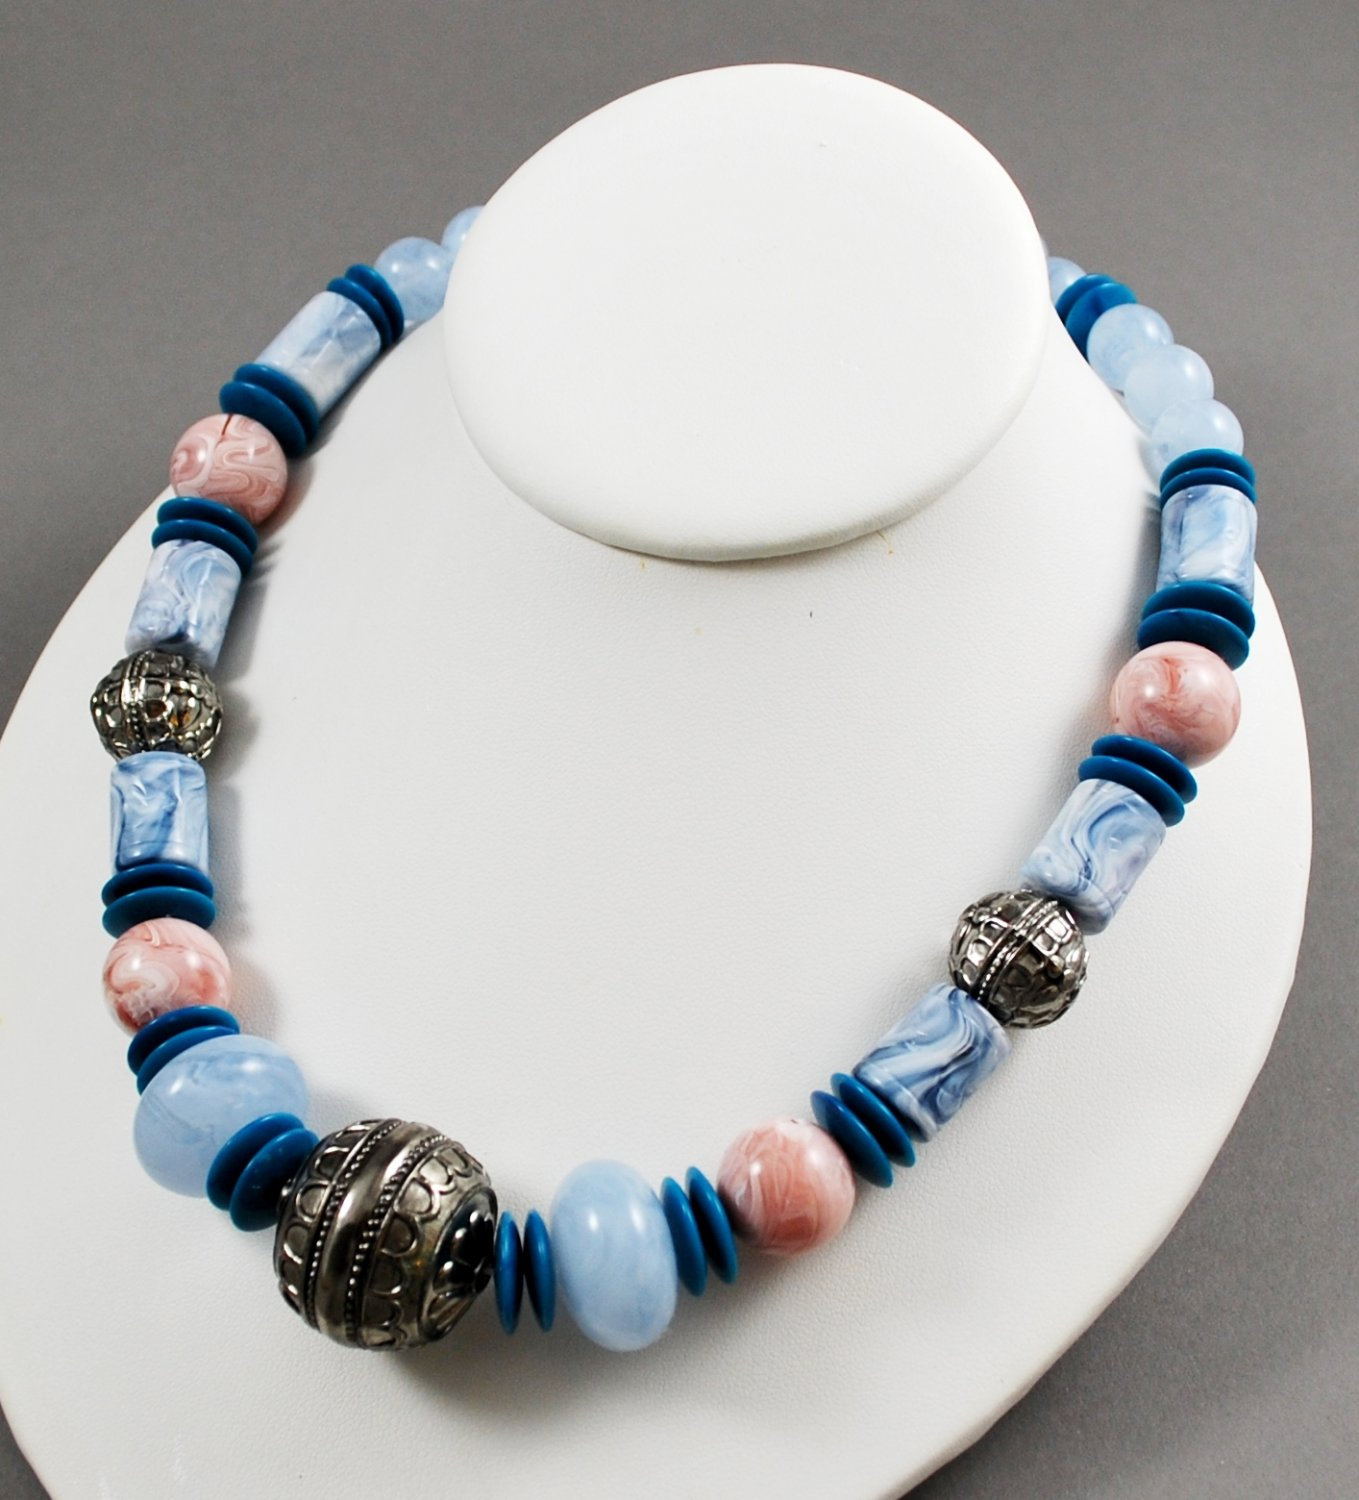 1990 Avon Moroccan Cool Blue and Silvertone Beaded Vintage Necklace